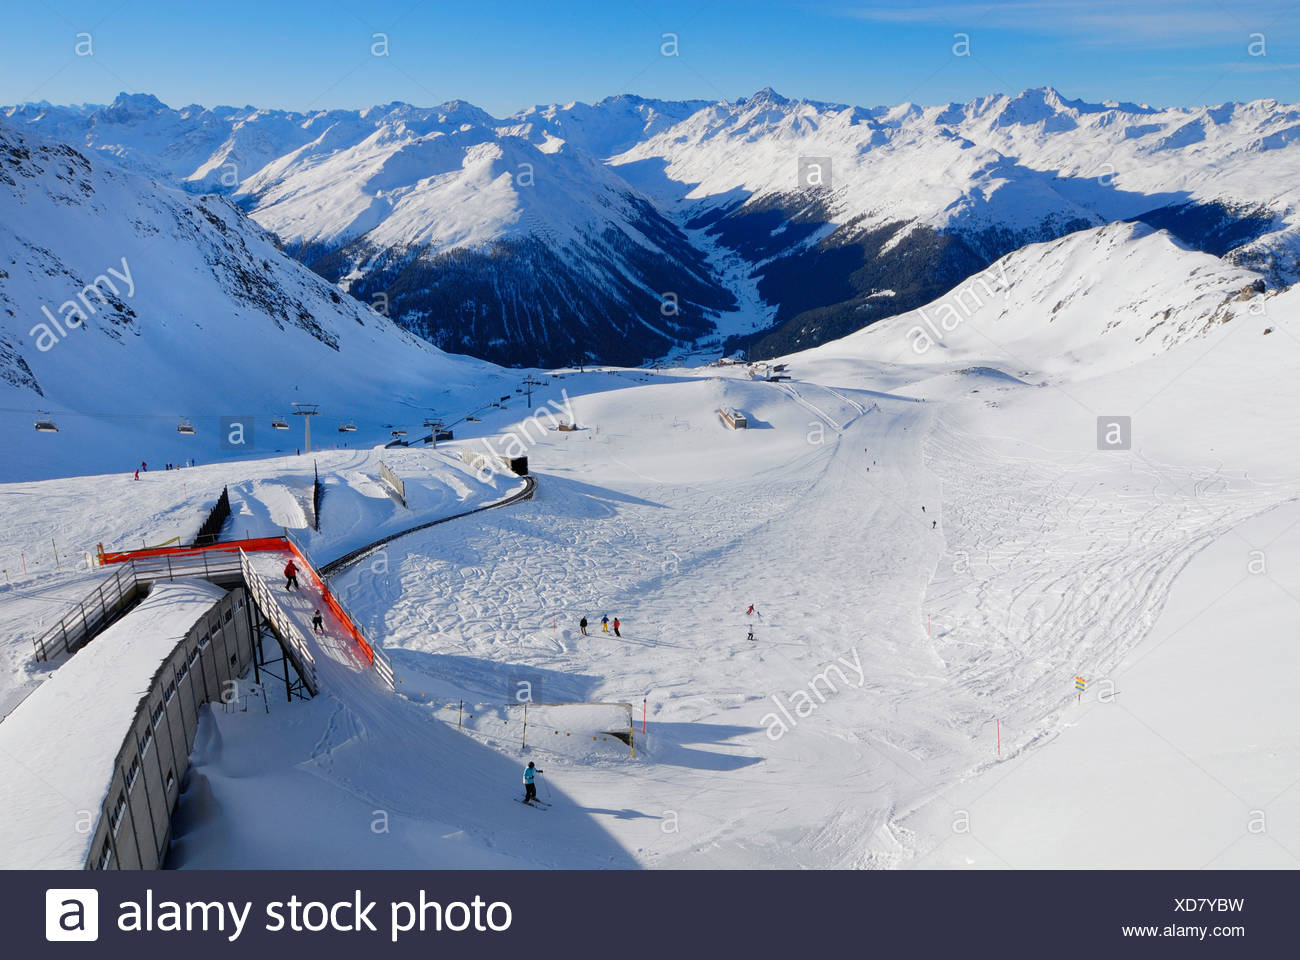 View from the top of Parsenn - Davos, Canton of Graubuenden, Switzerland, Europe. - Stock Image